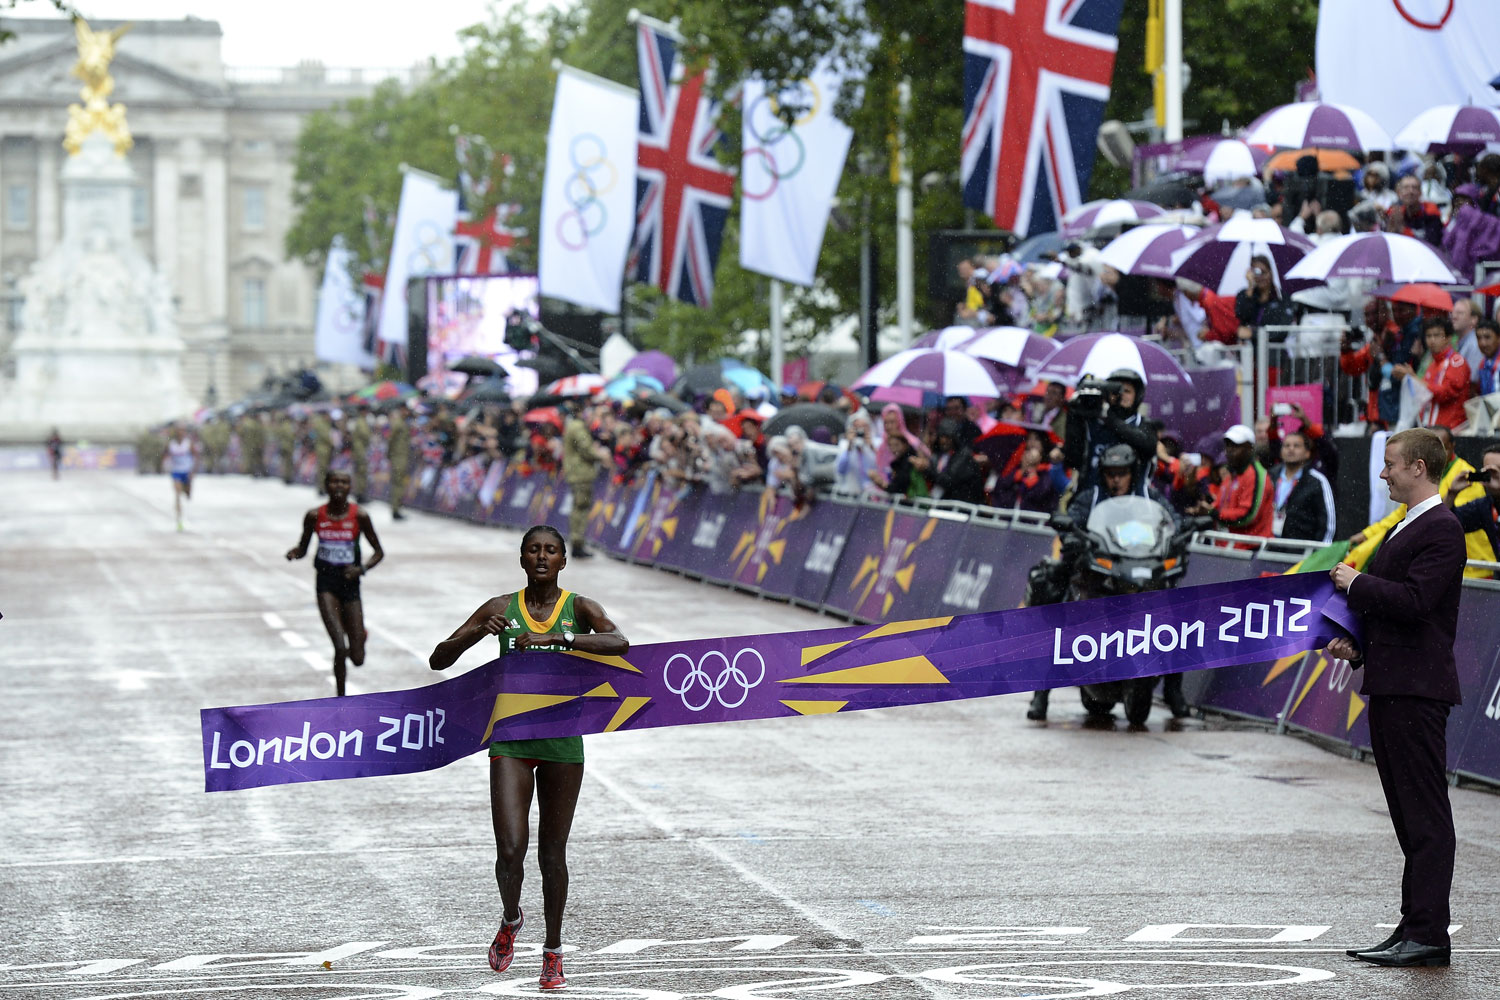 Gold medalist Tiki Gelana (C) crosses the finish line ahead of silver medallist Priscah Jeptoo (L) in the women's marathon at the 2012 London Olympic Games.